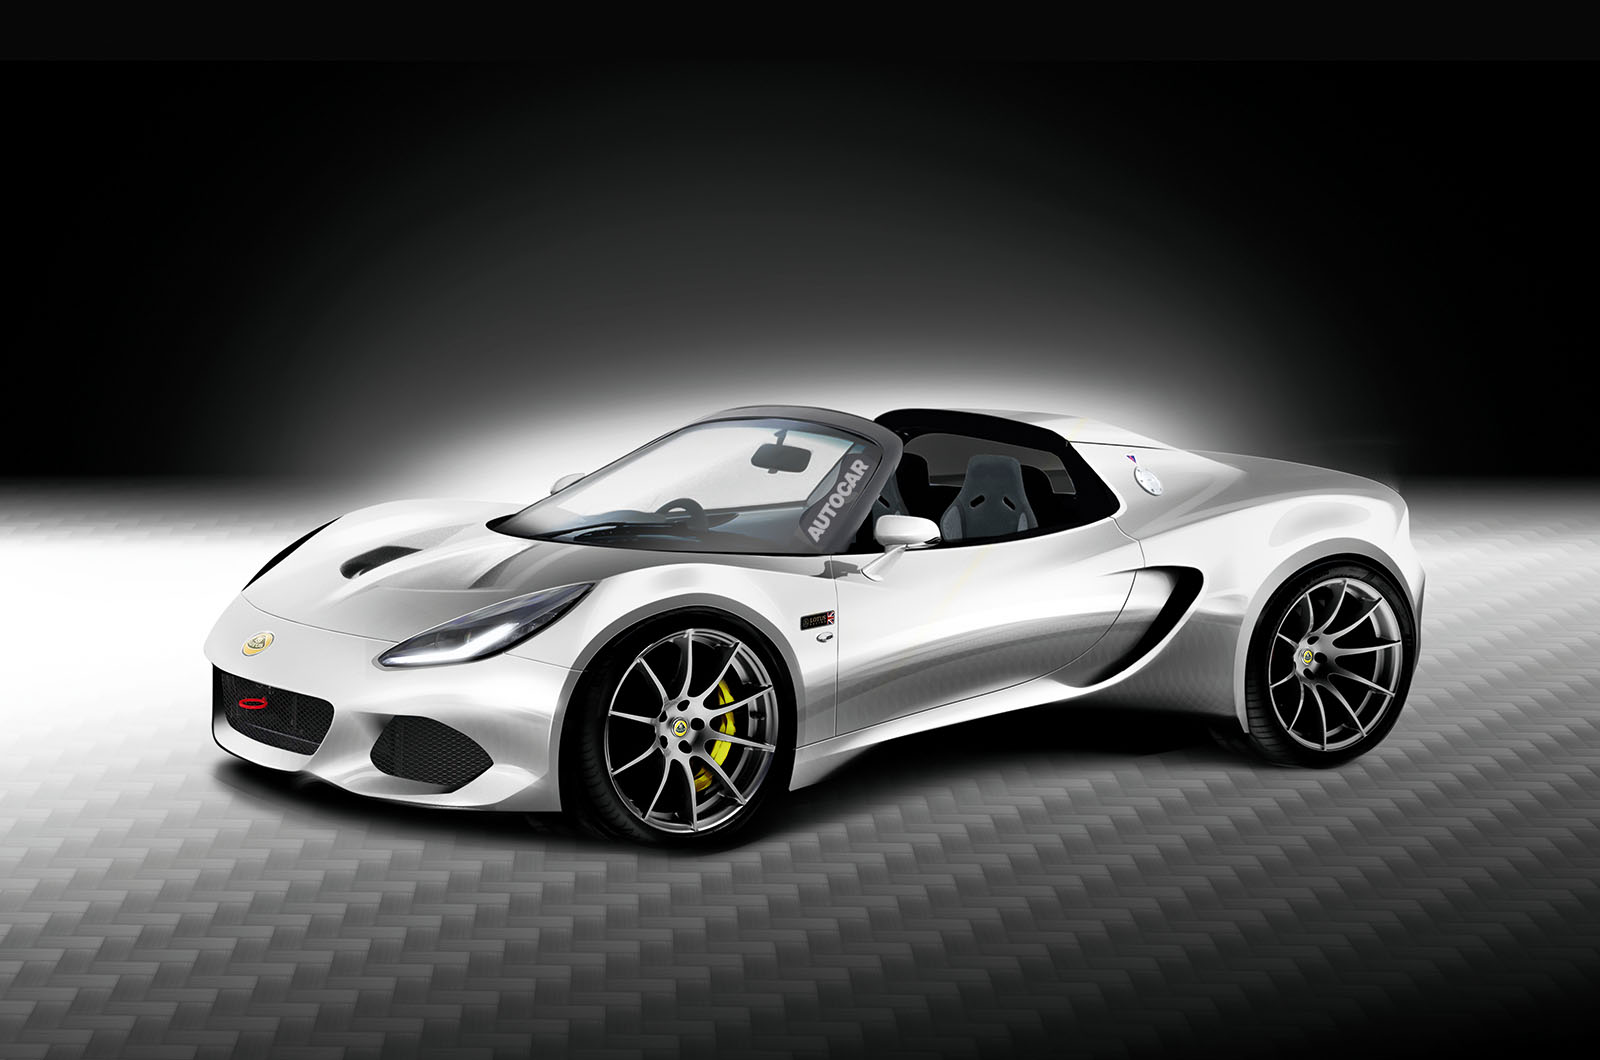 2020 lotus elise to remain true to its roots | autocar